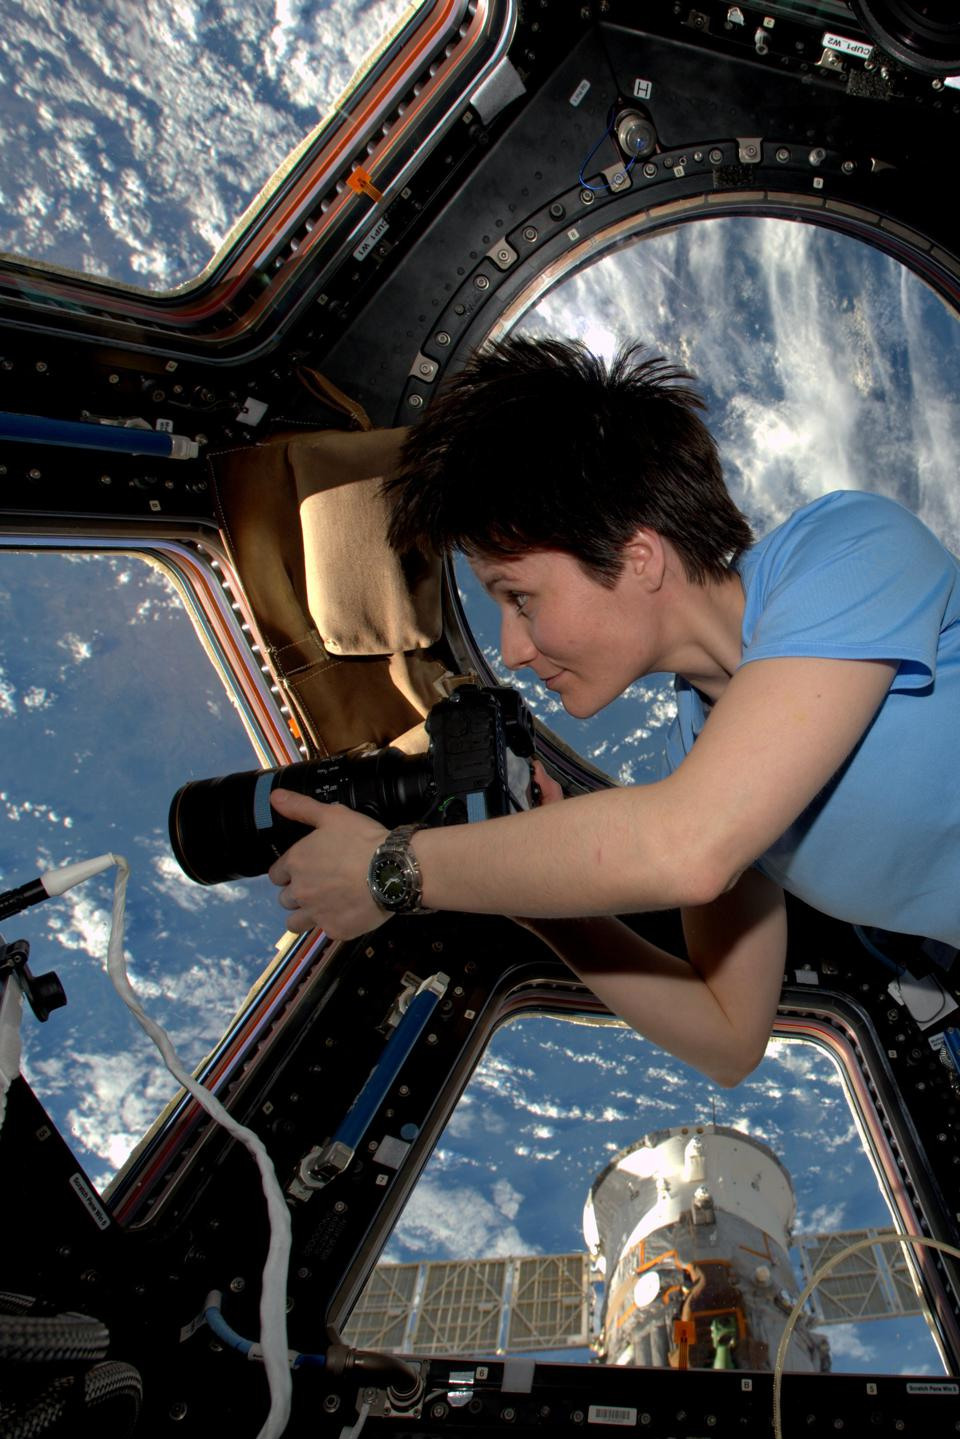 ESA astronaut Samantha Cristoforetti on the International Space Station 3 February 2015 during her Futura mission.